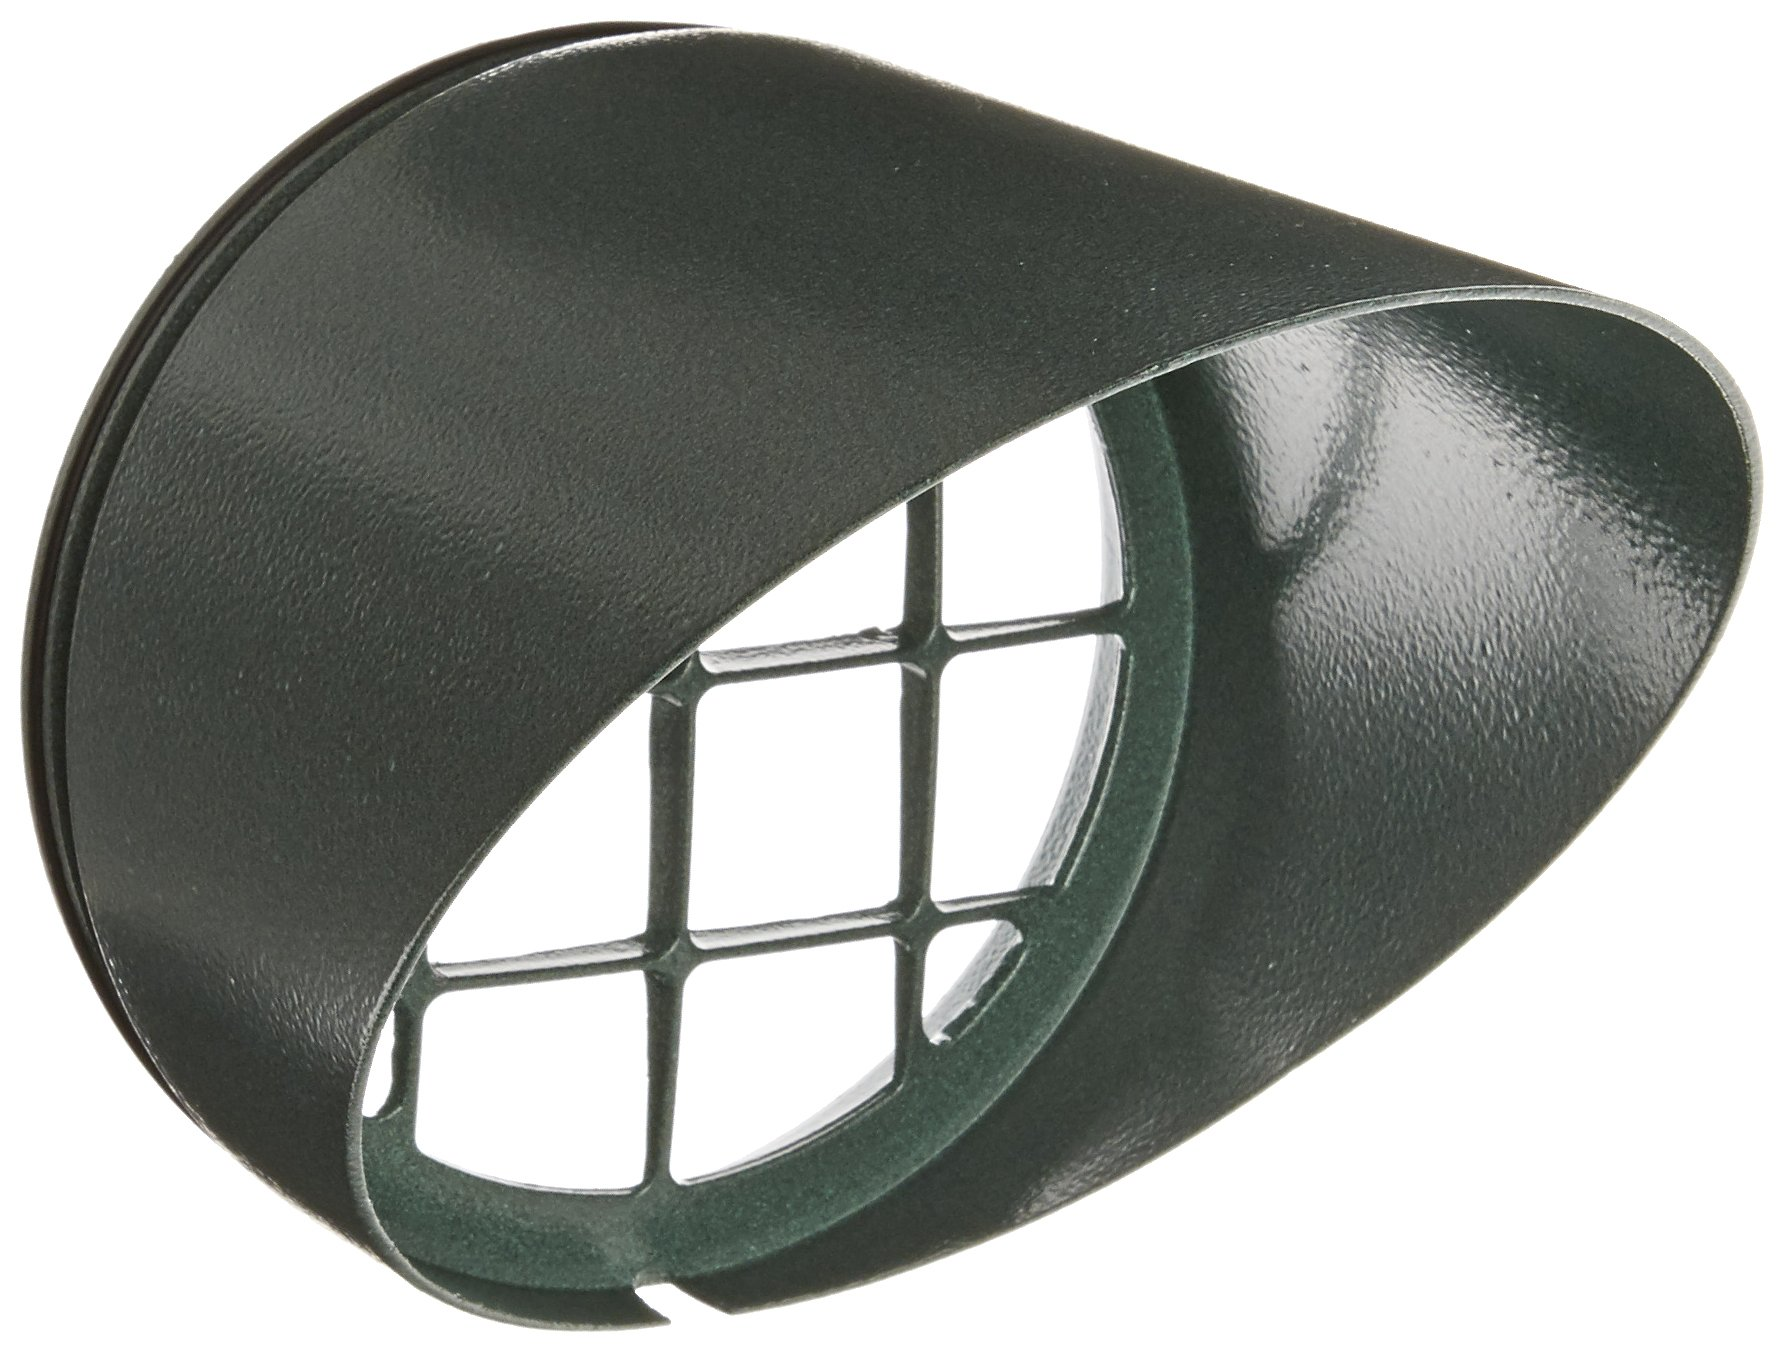 RAB Lighting HV1VG H System Visor, Aluminum, 5-5/8'' Diameter x 6-1/4'' Height, Verde Green